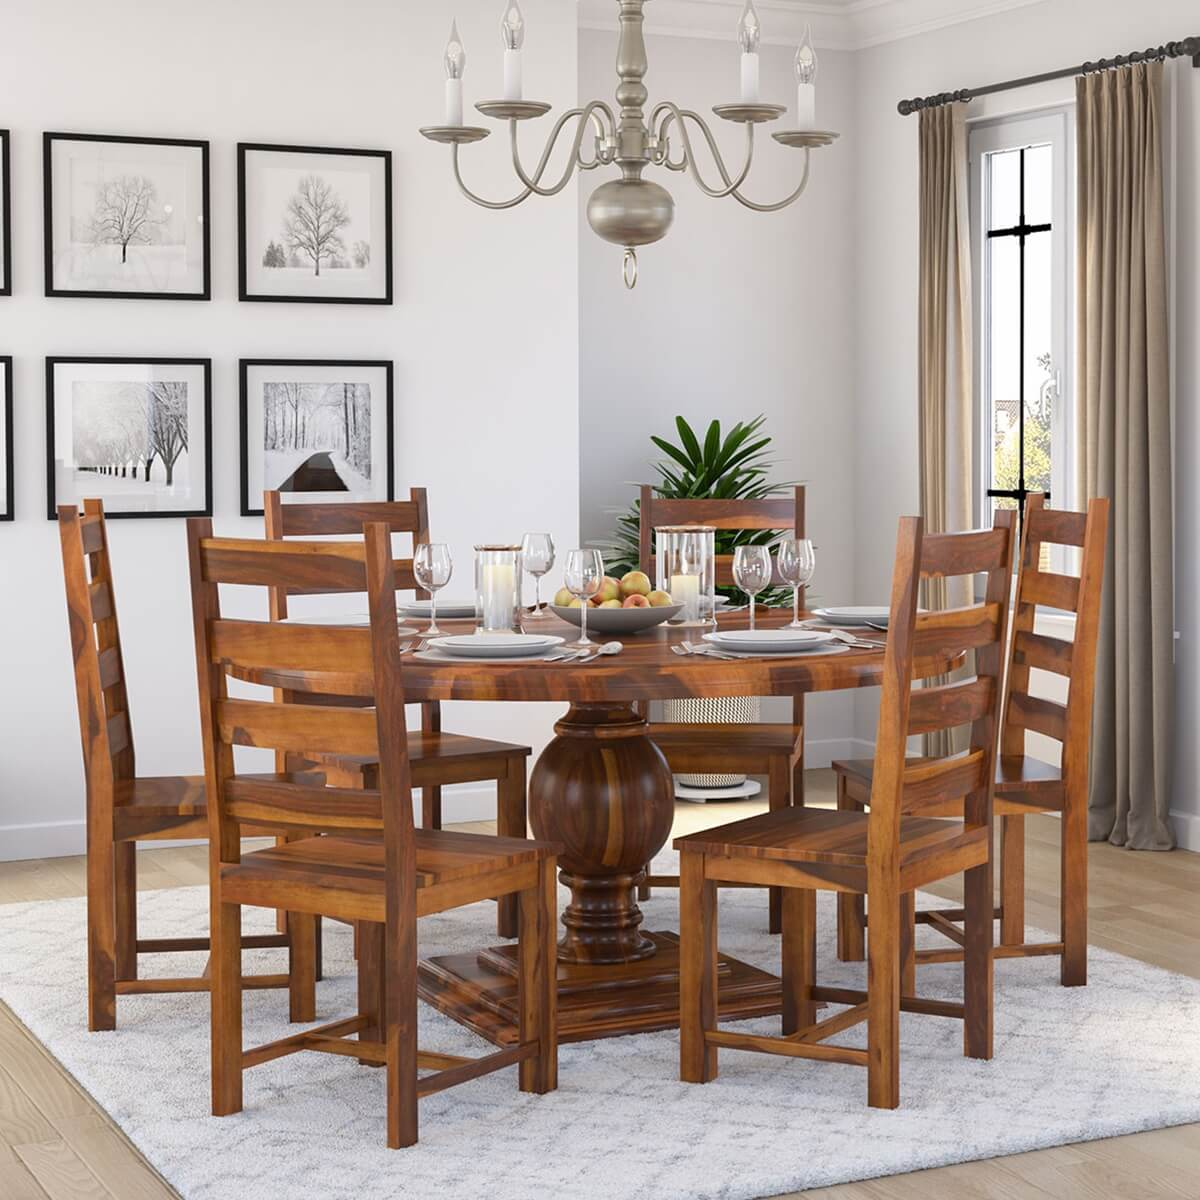 Round Solid Wood Dining Table: Cloverdale Solid Wood Round Dining Table With 6 Chairs Set